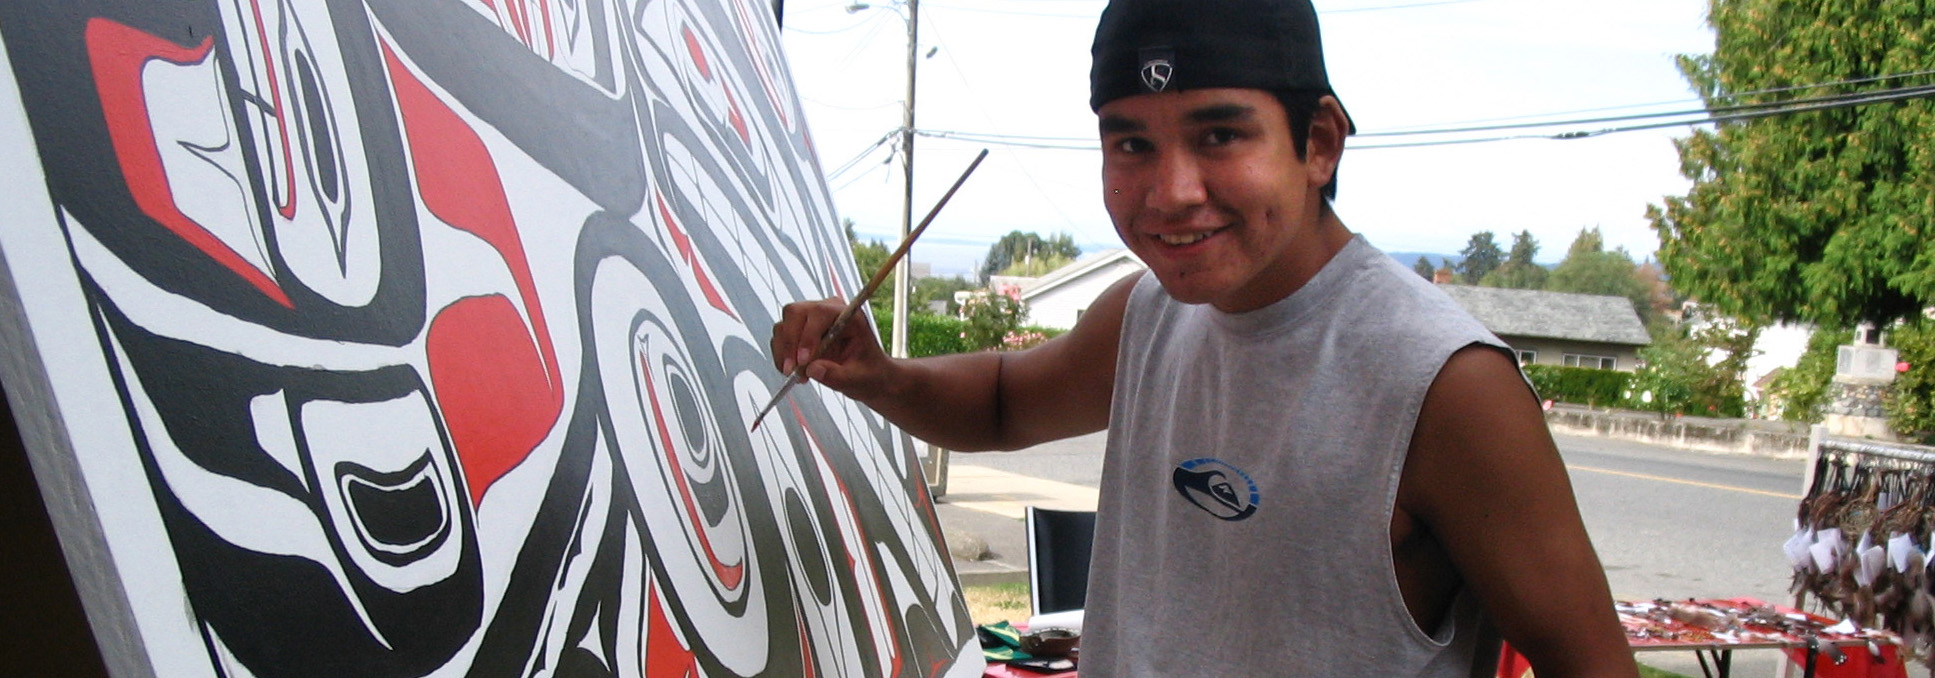 Chemainus Youth Murals project